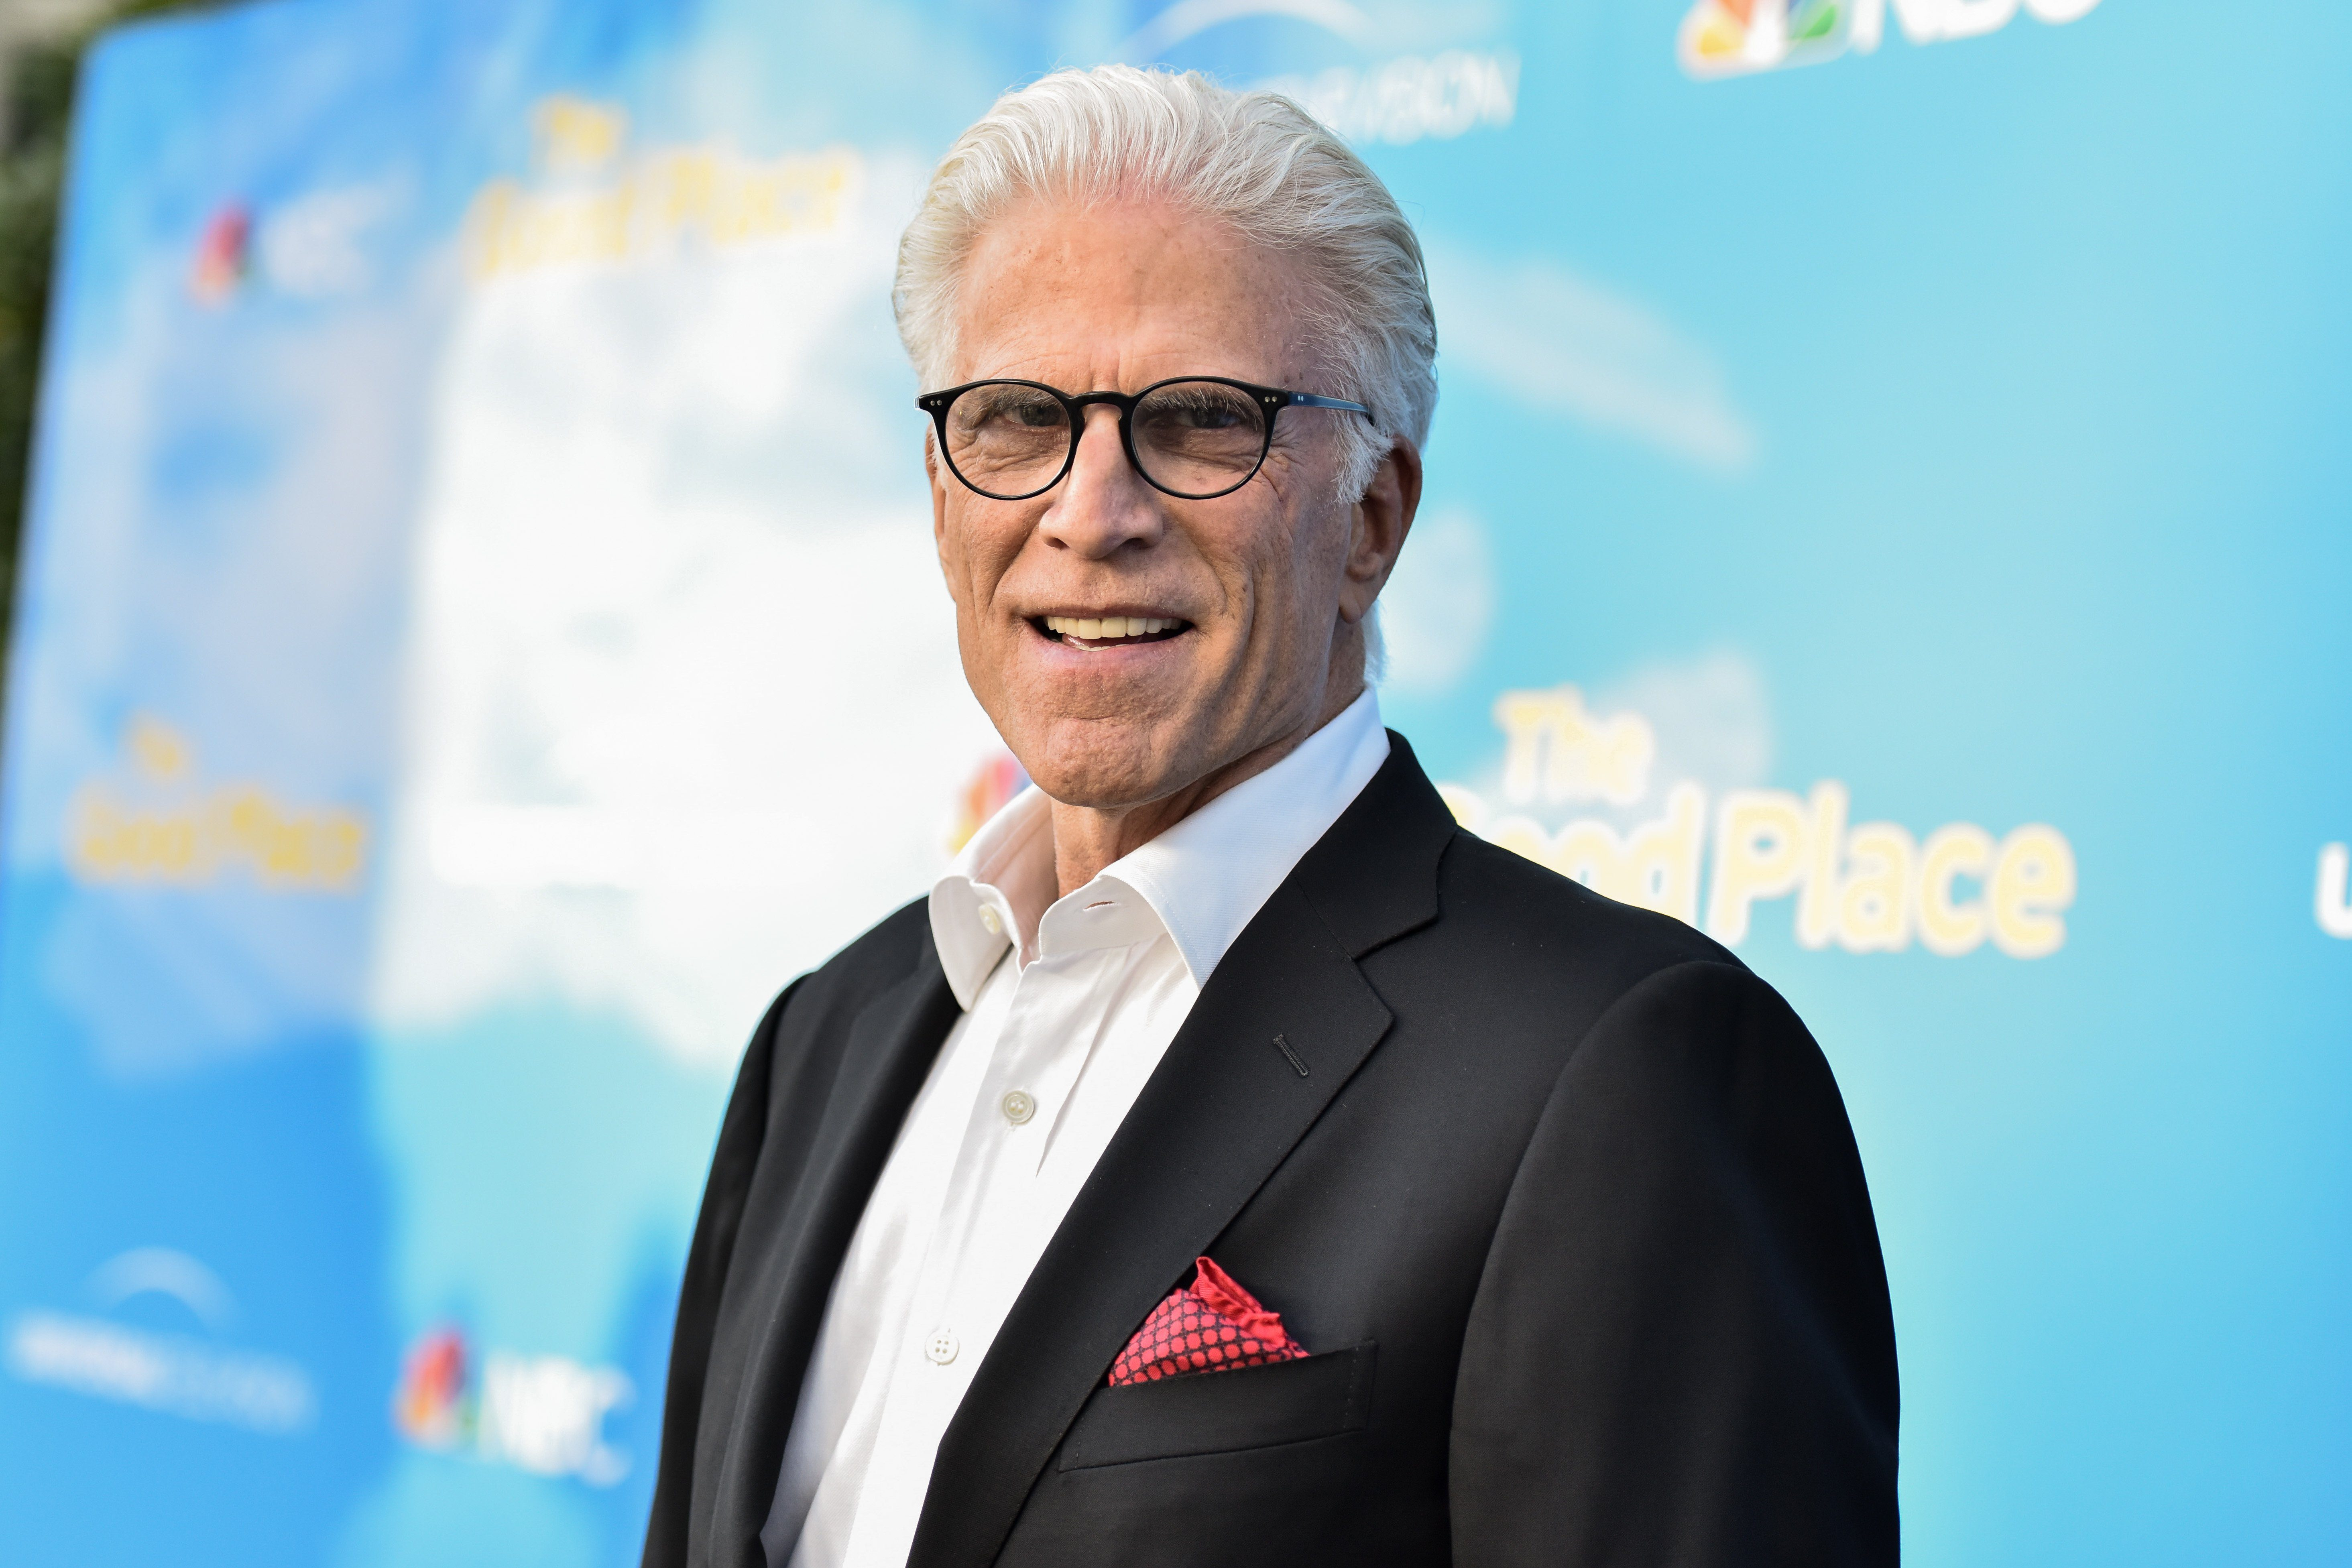 Mandatory Credit: Photo by Rob Latour/Shutterstock (10286637t) Ted Danson 'The Good Place' FYC Event, Arrivals, Saban Media Center, Los Angeles - 07 Jun 2019